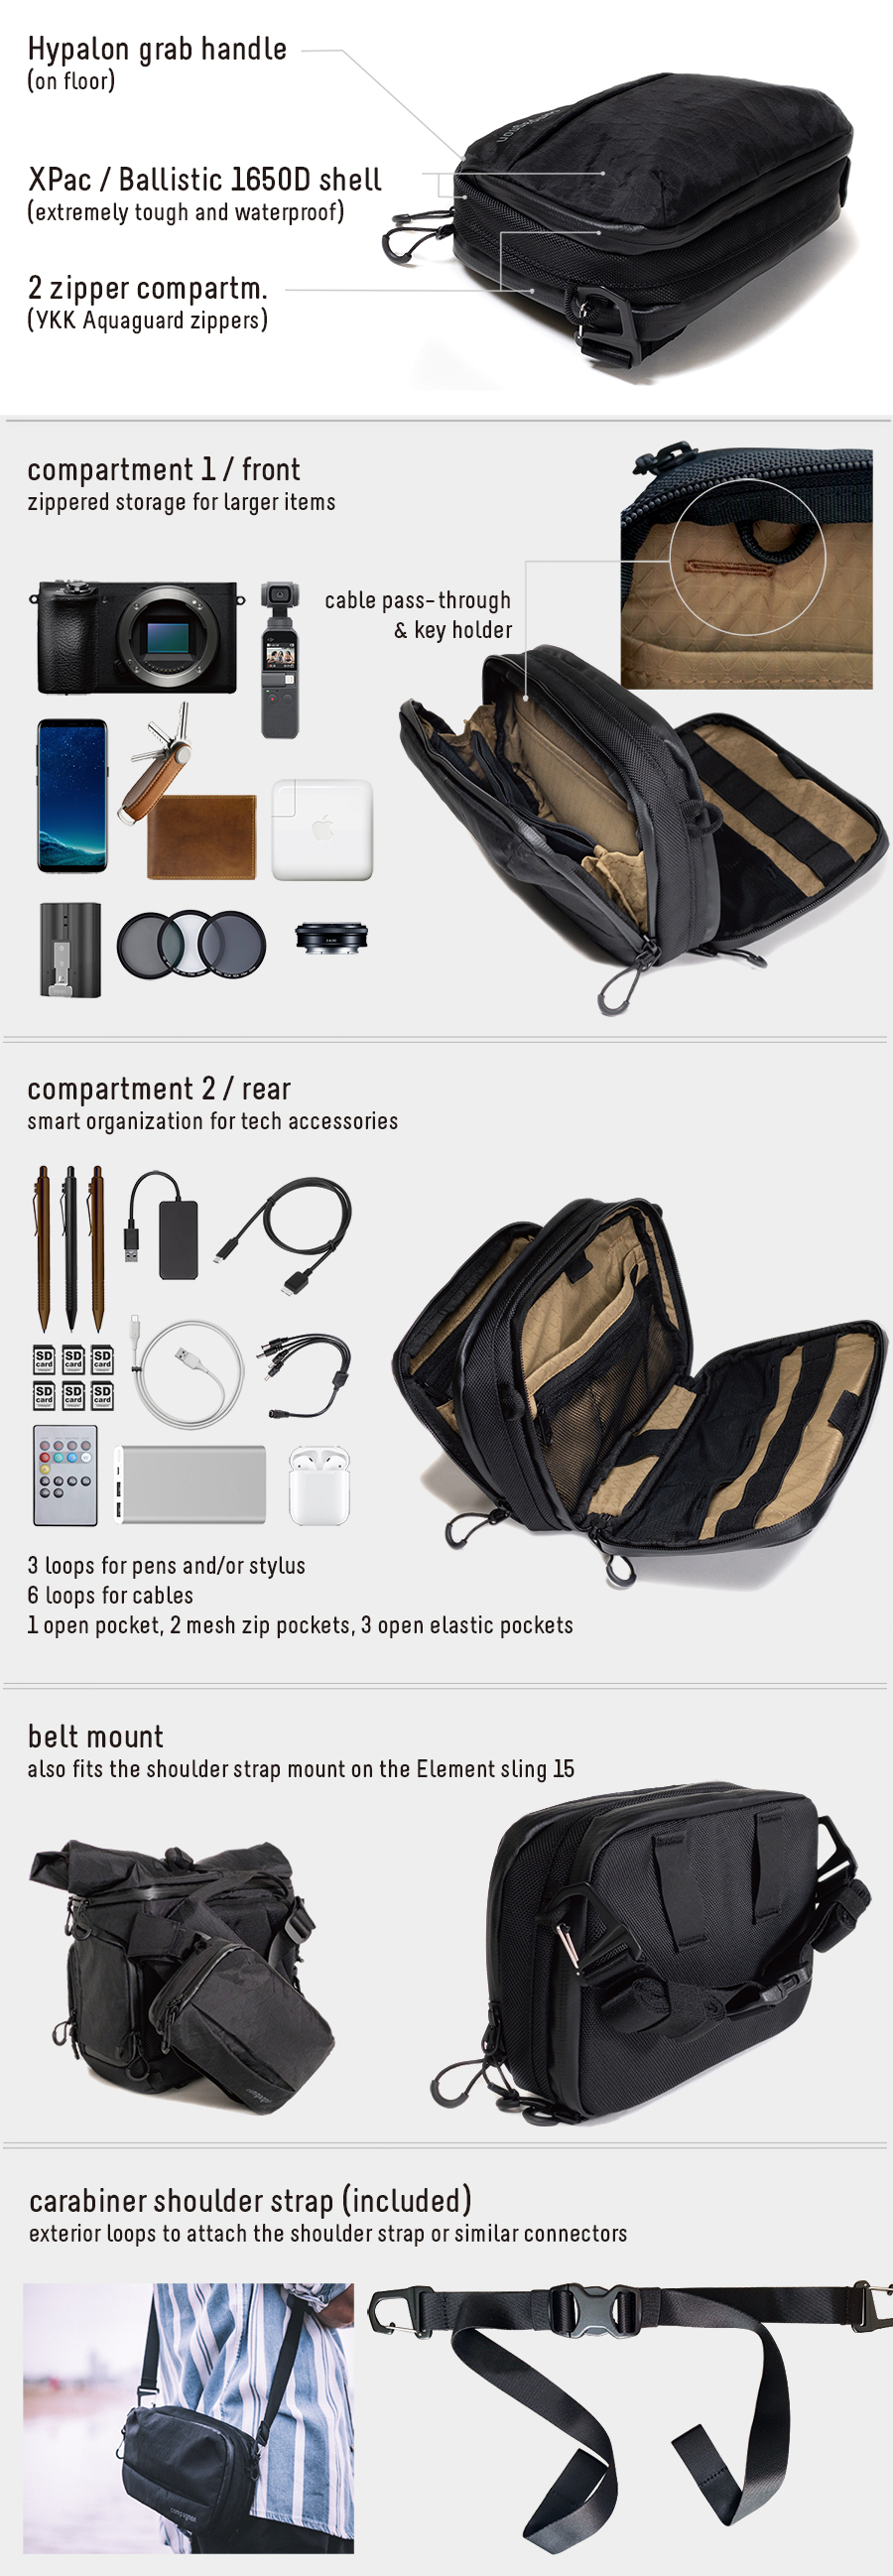 compagnon_element_pouch_techpouch_gearpocket_sling_xpac_organizer_beltpocket_ENG